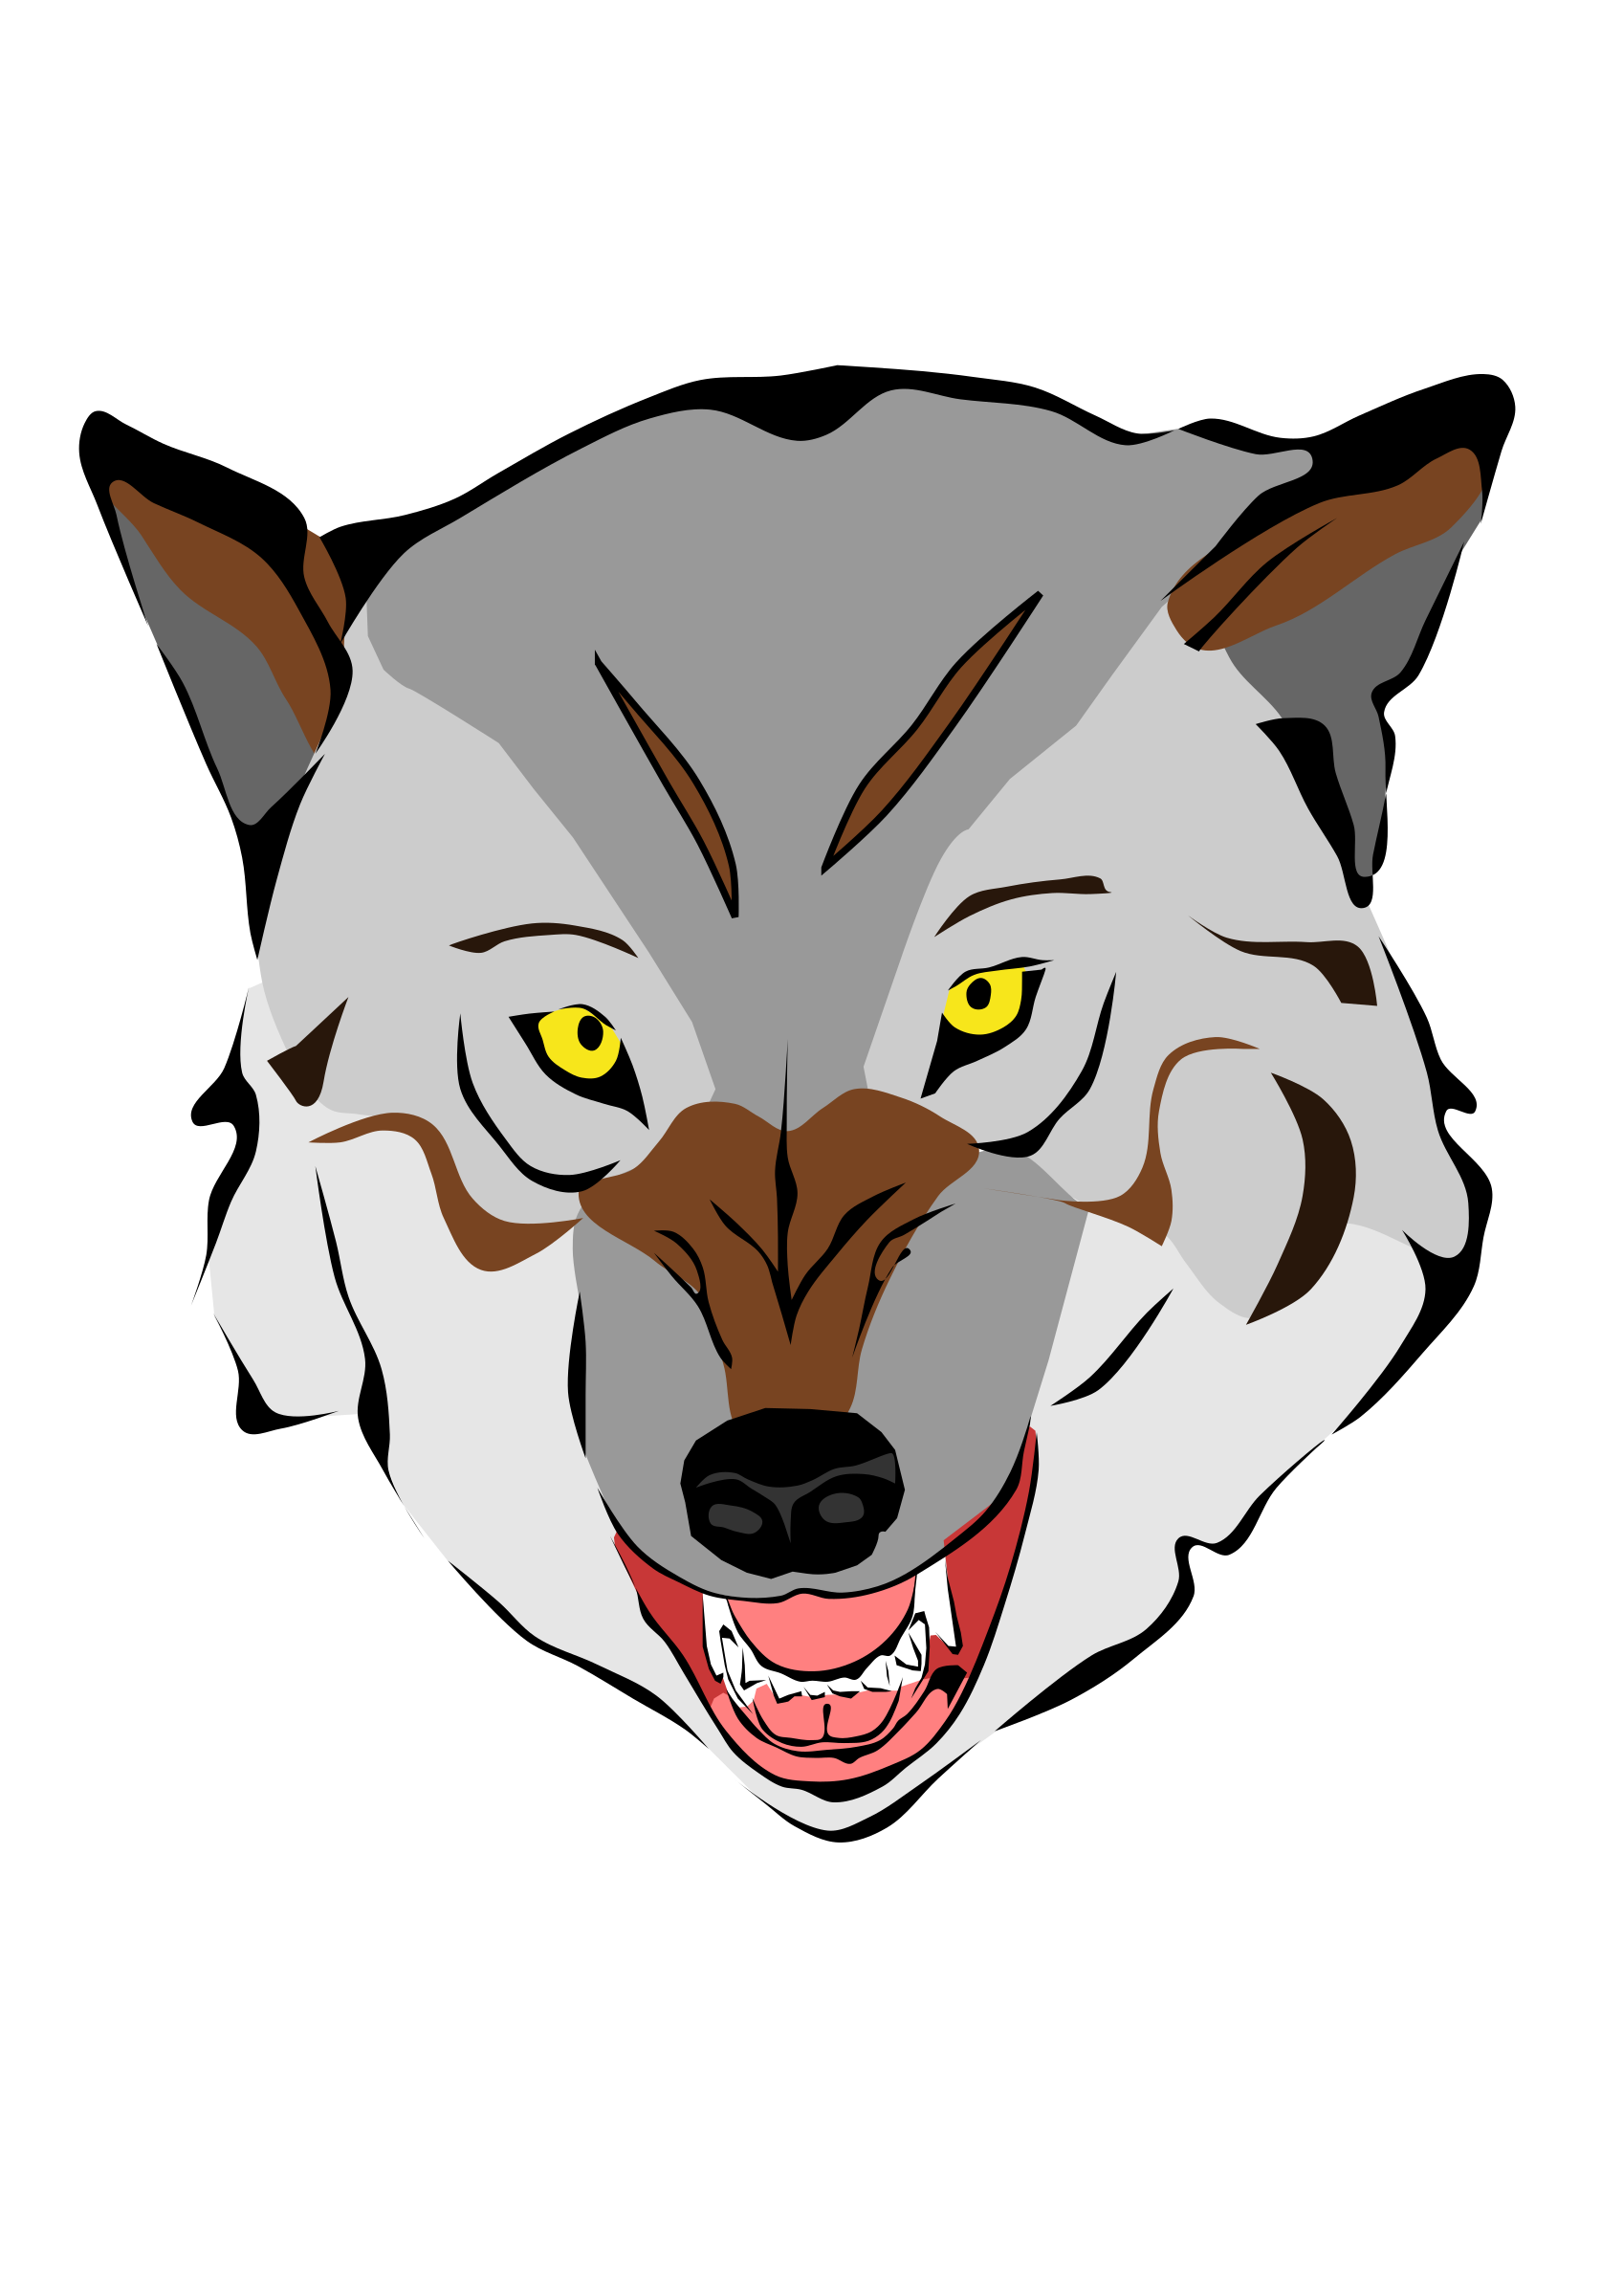 Wolf face mask clipart freeuse download Free Dog Mask Cliparts, Download Free Clip Art, Free Clip ... freeuse download